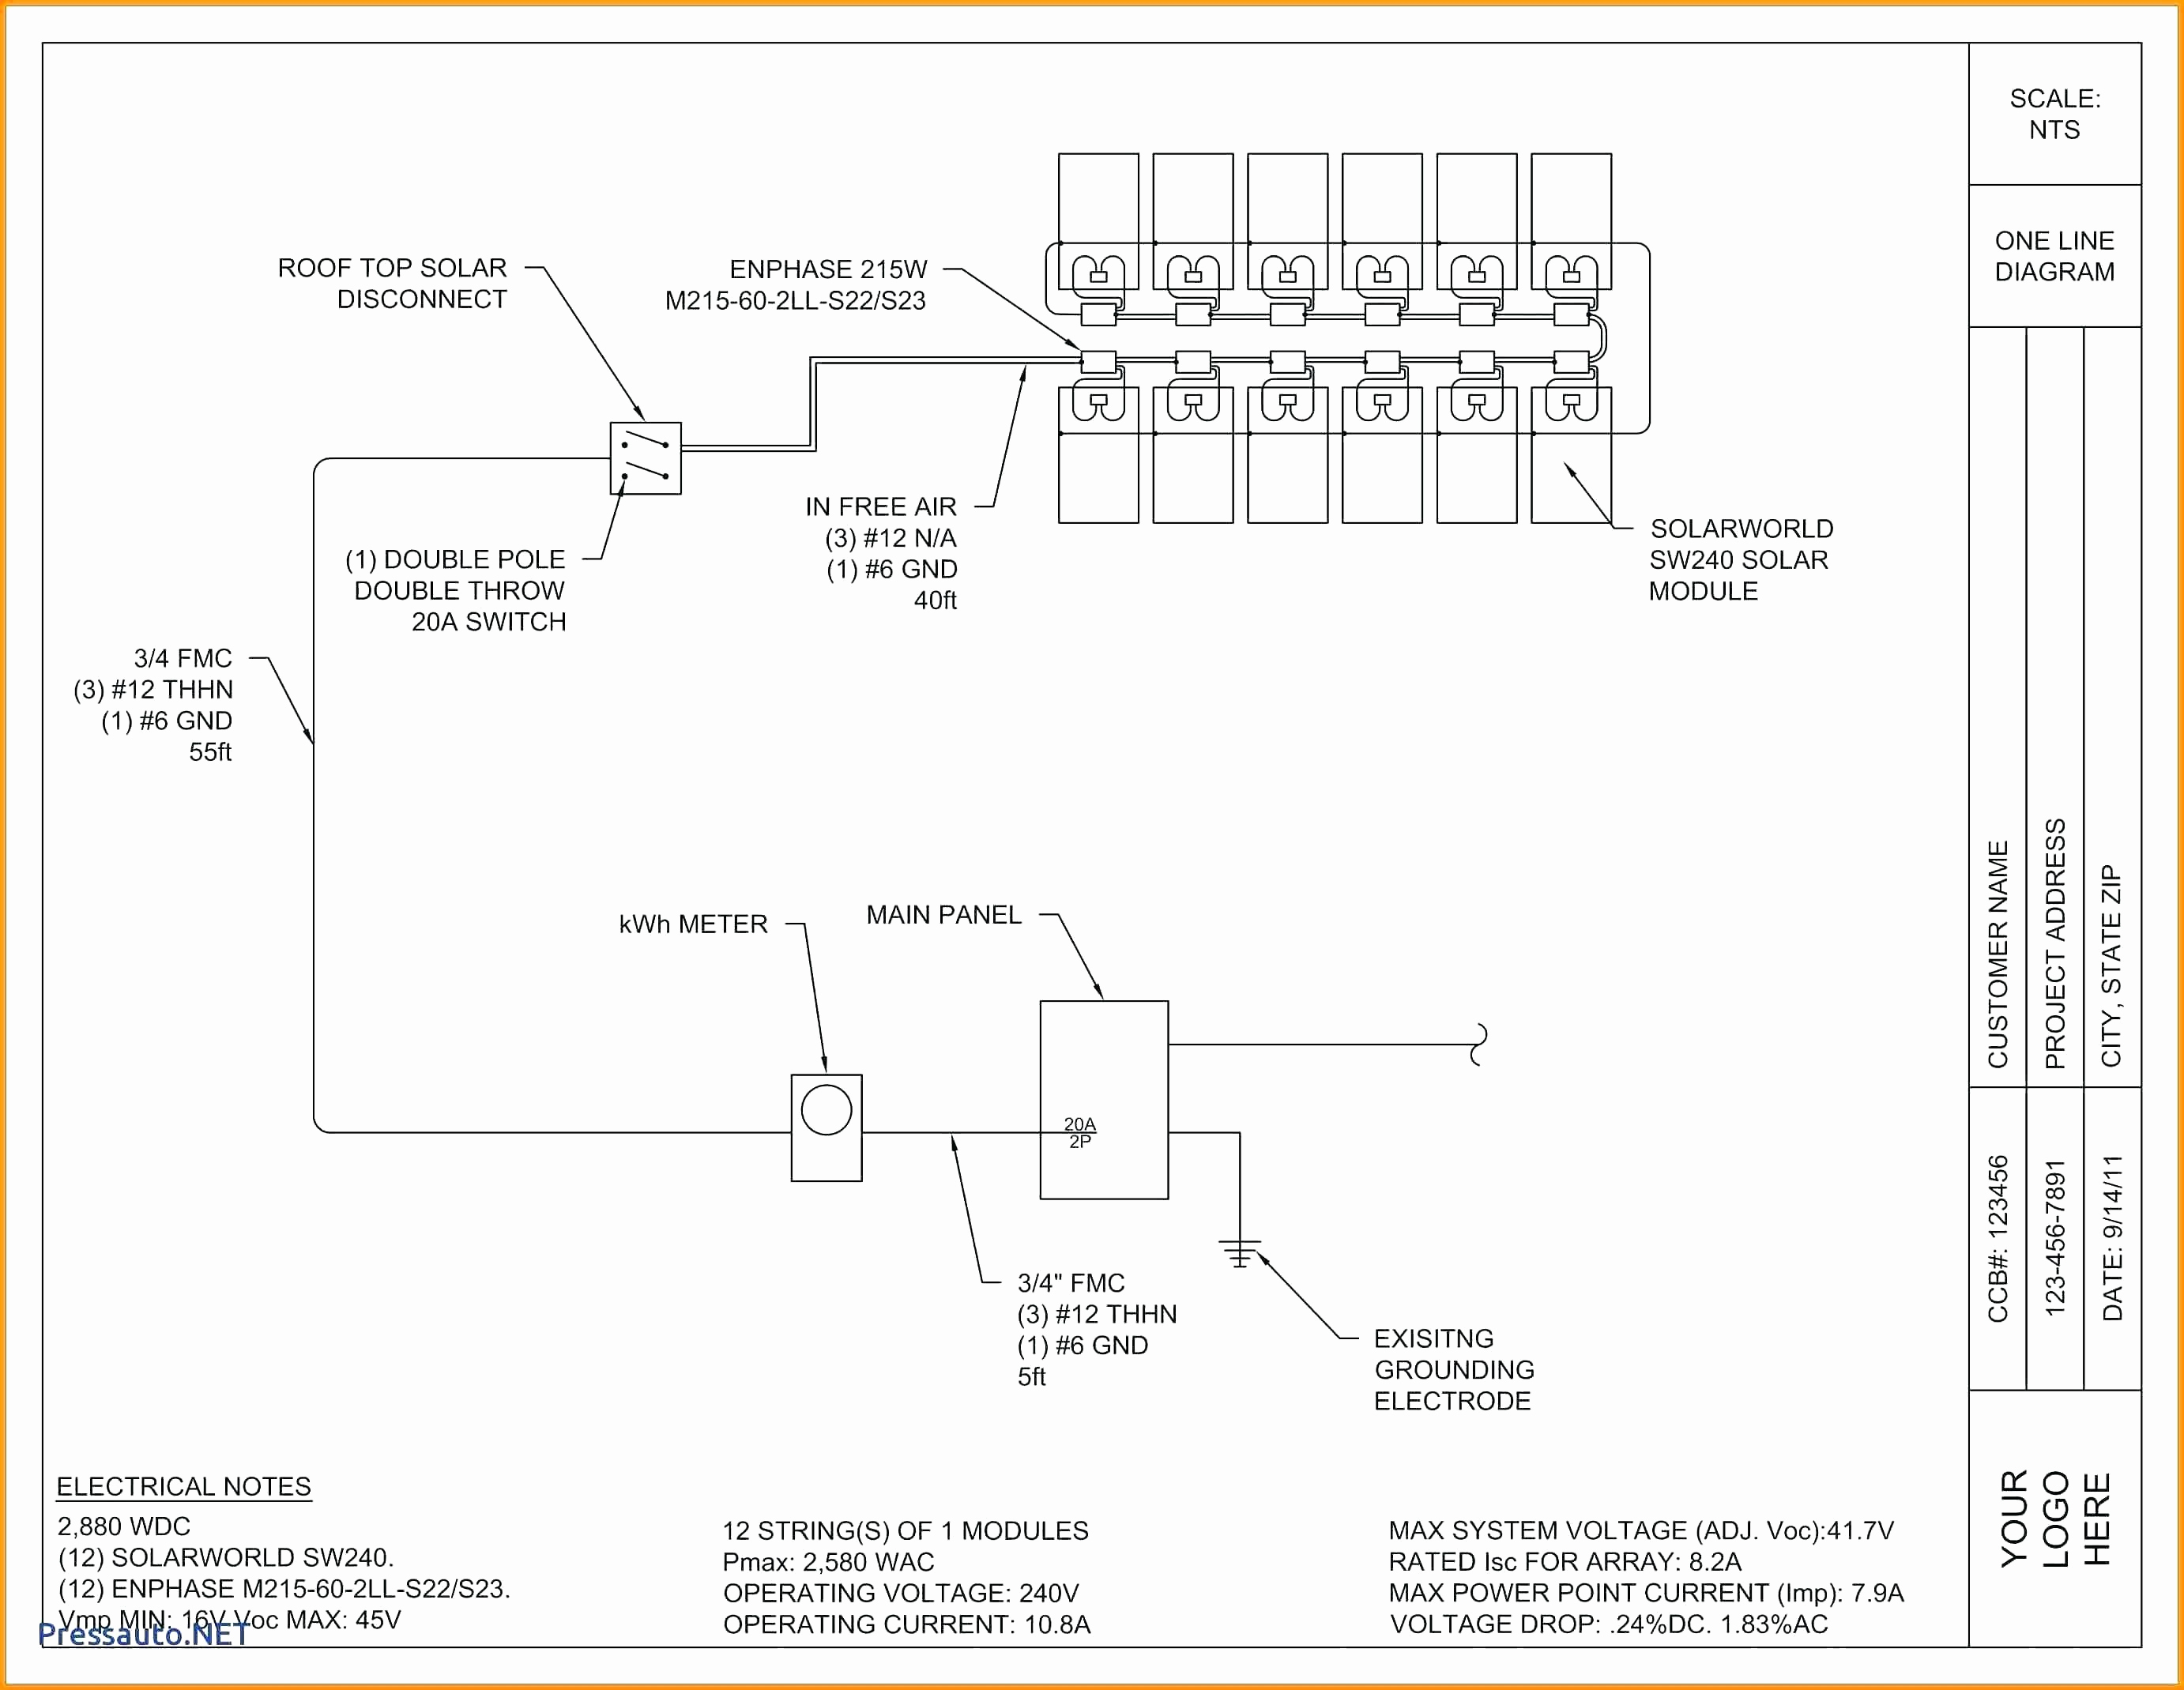 Honeywell Thermostat Wiring Diagram On Wiring Diagram For Thermostat